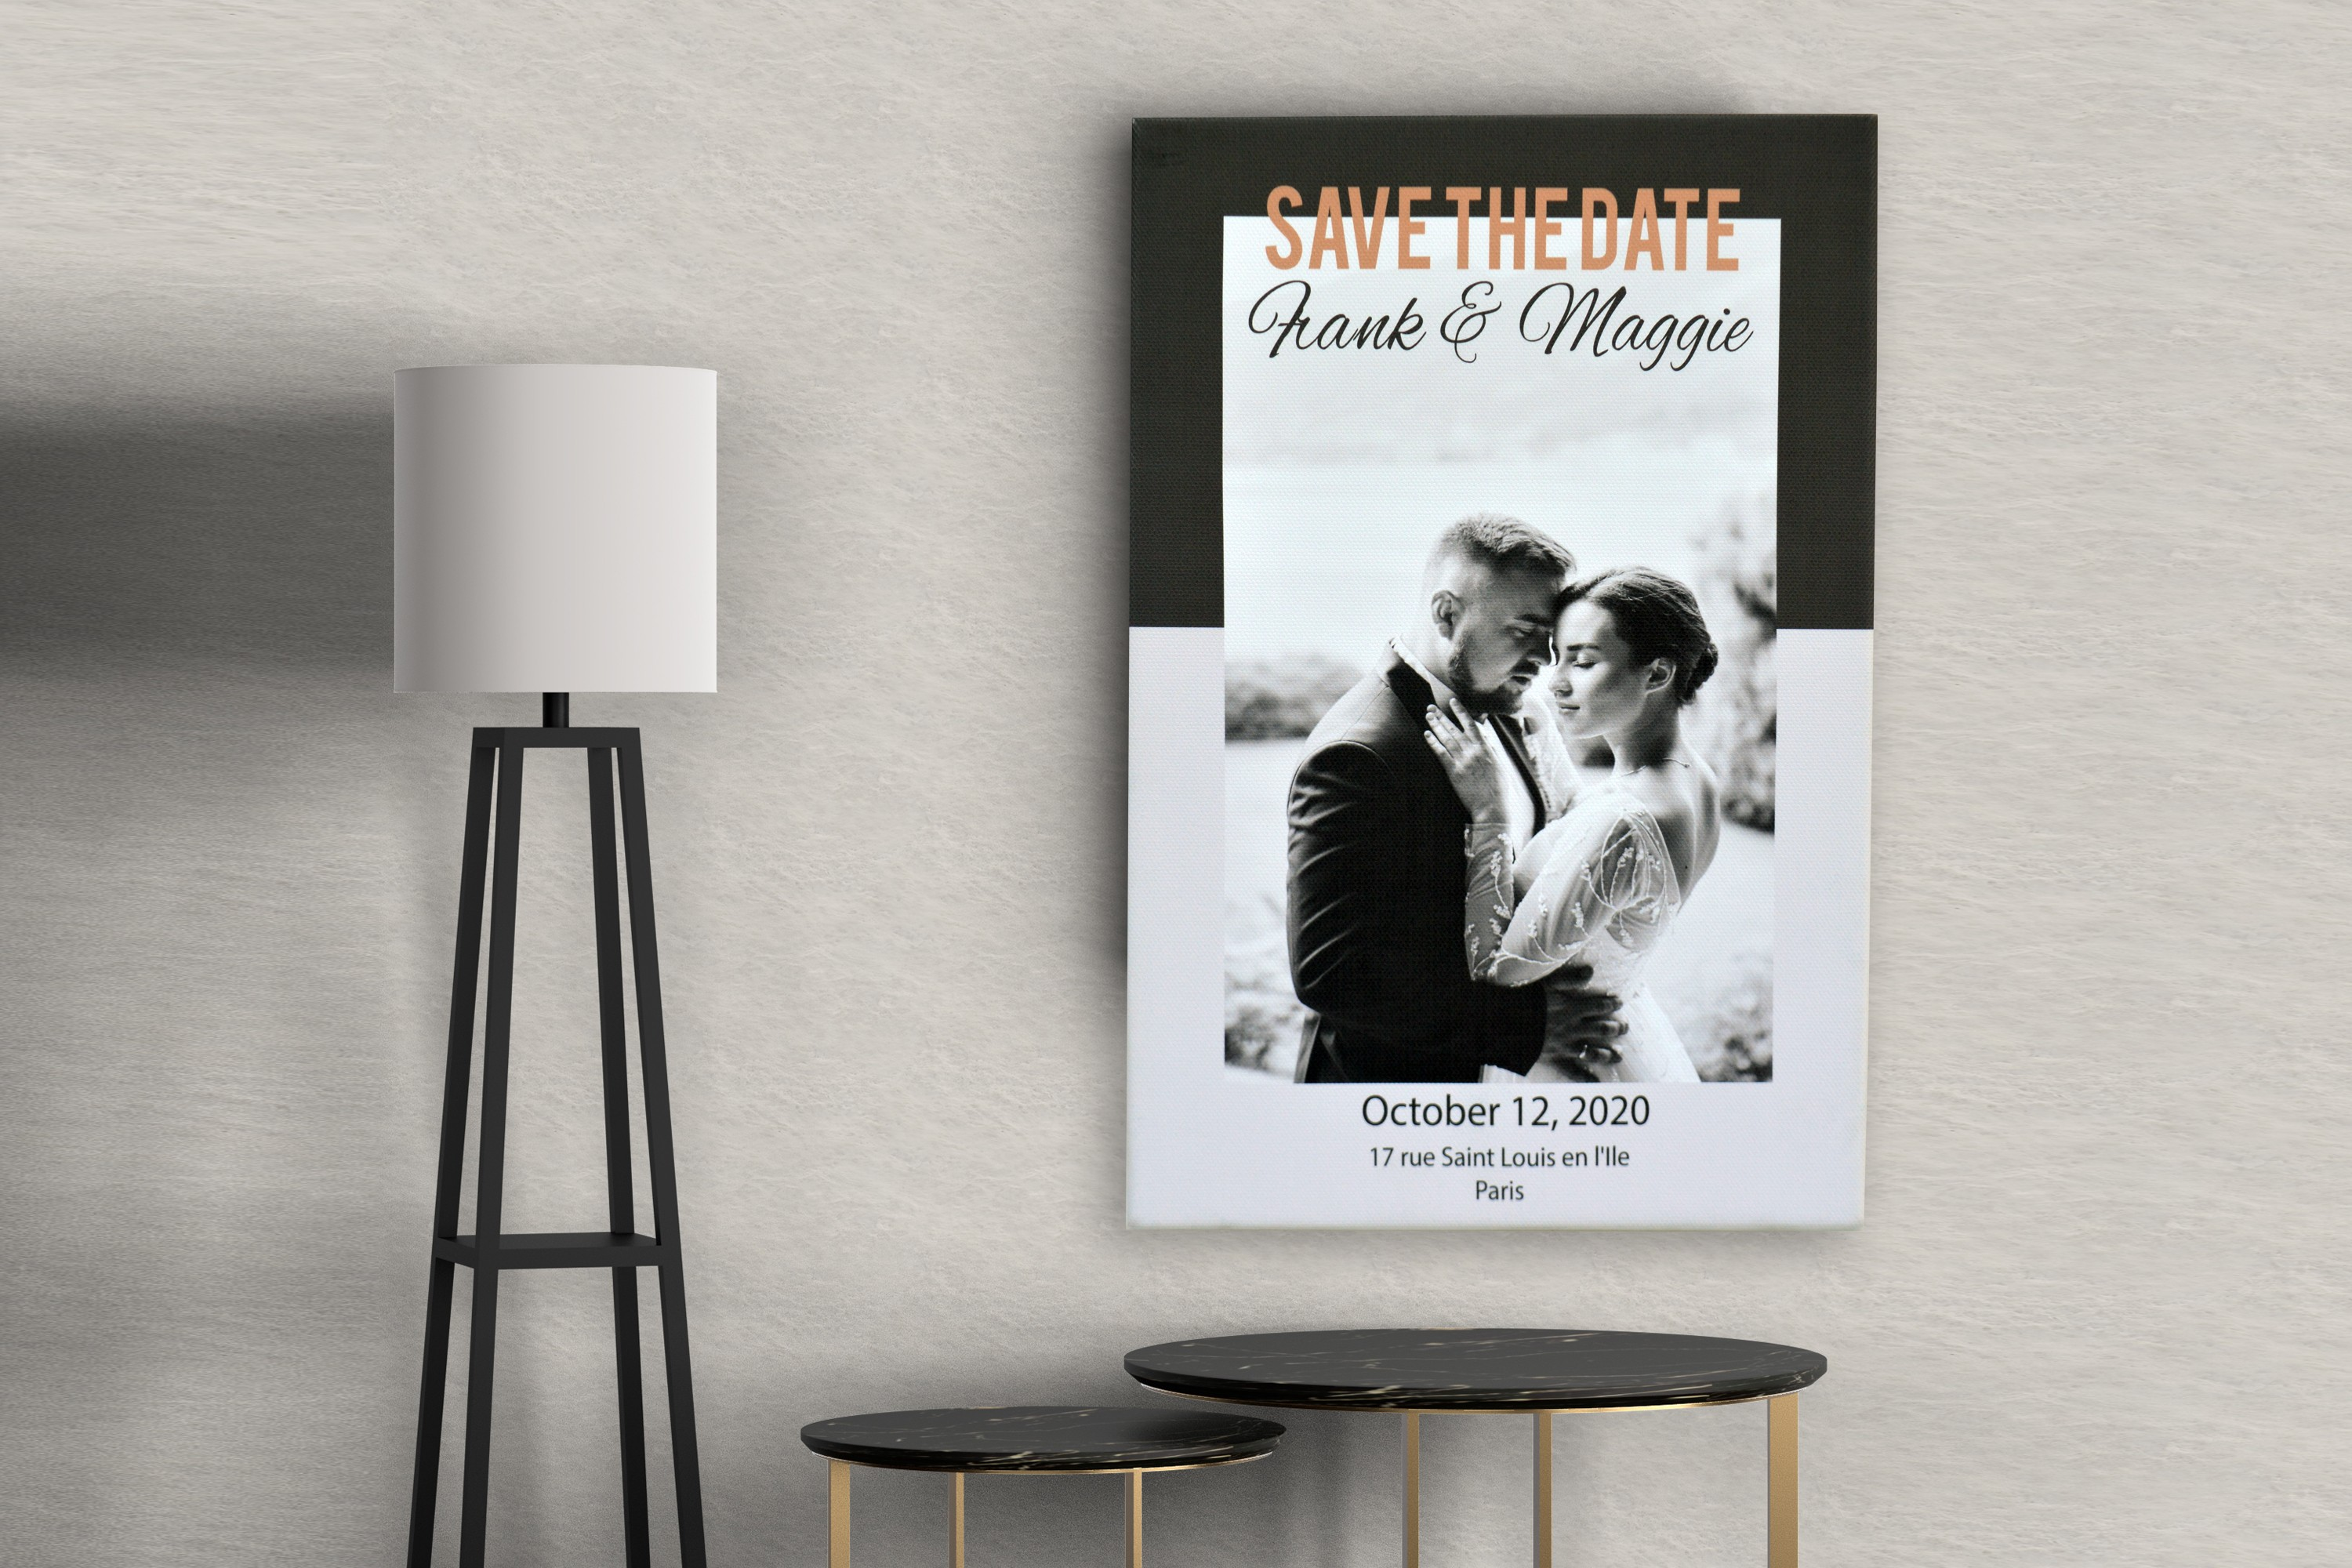 Save the date canvas